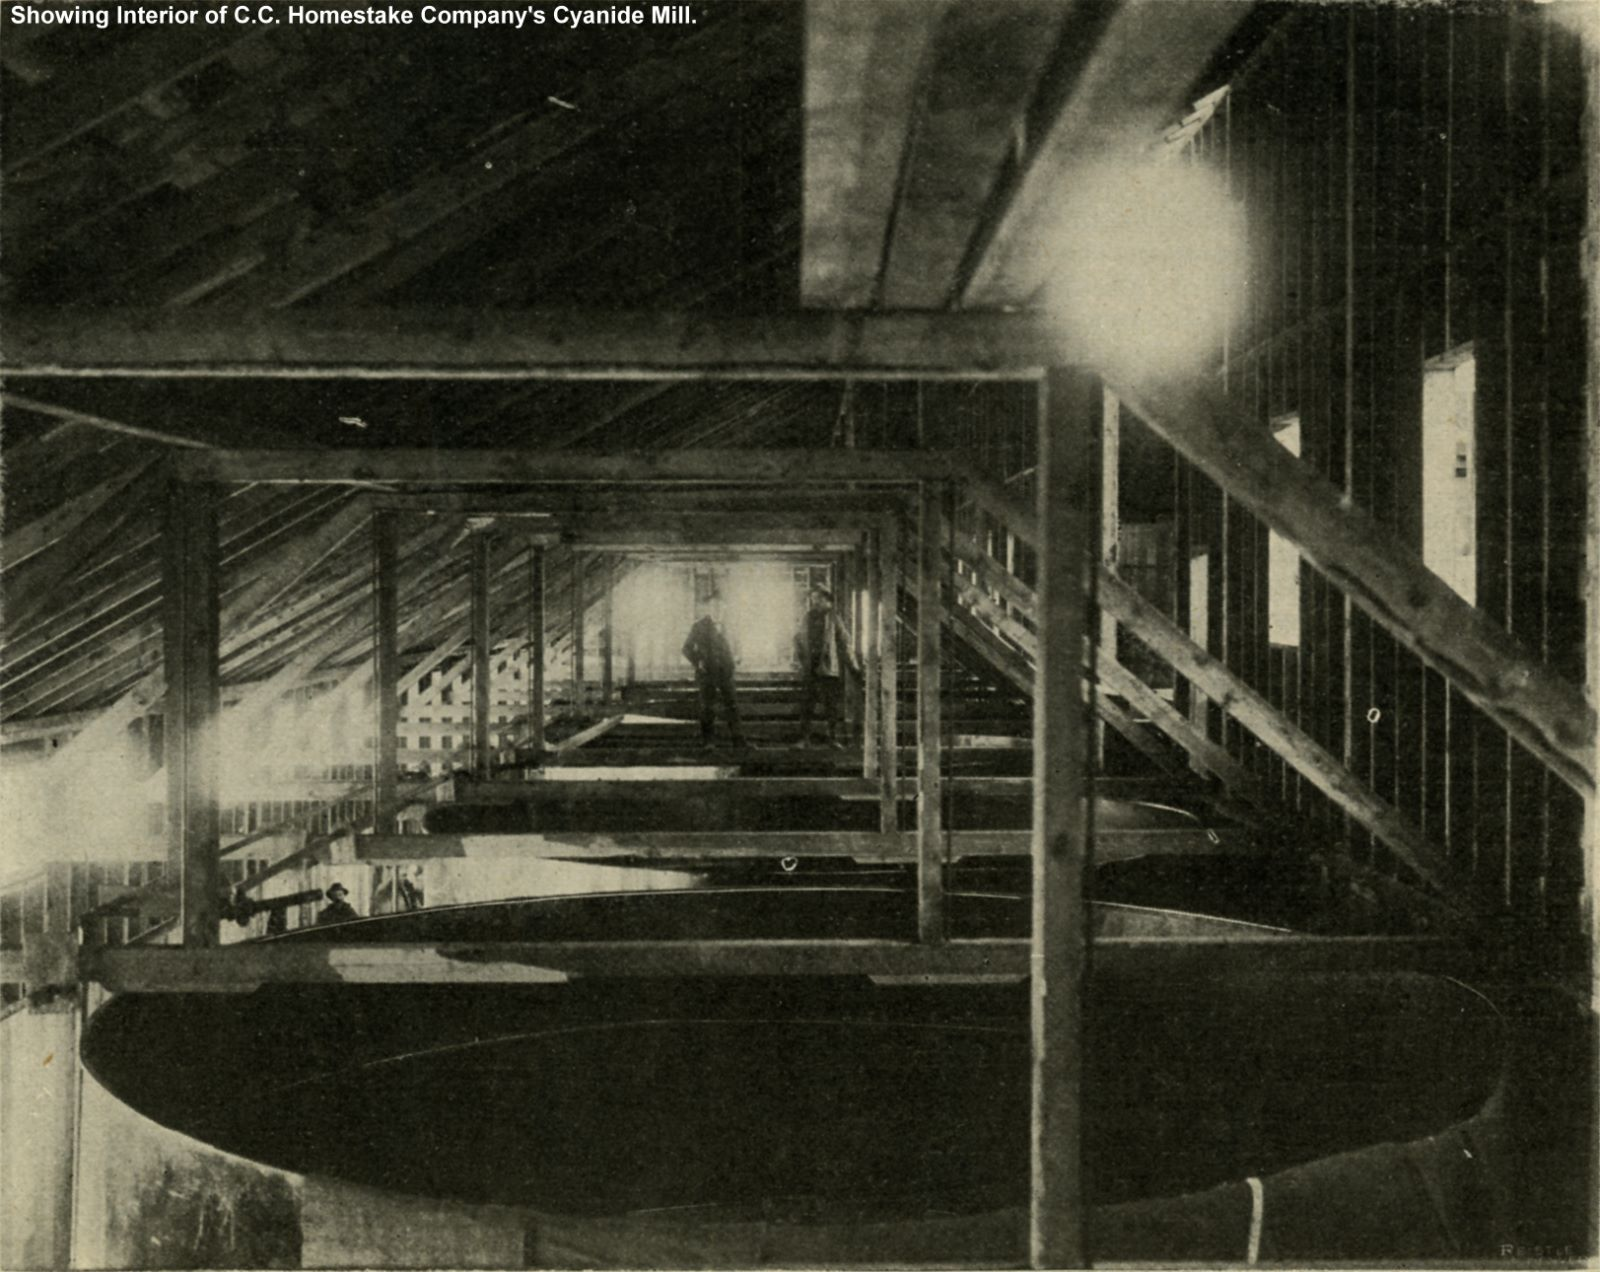 Showing Interior of C. C. Homestake Company's Cyanide Mill